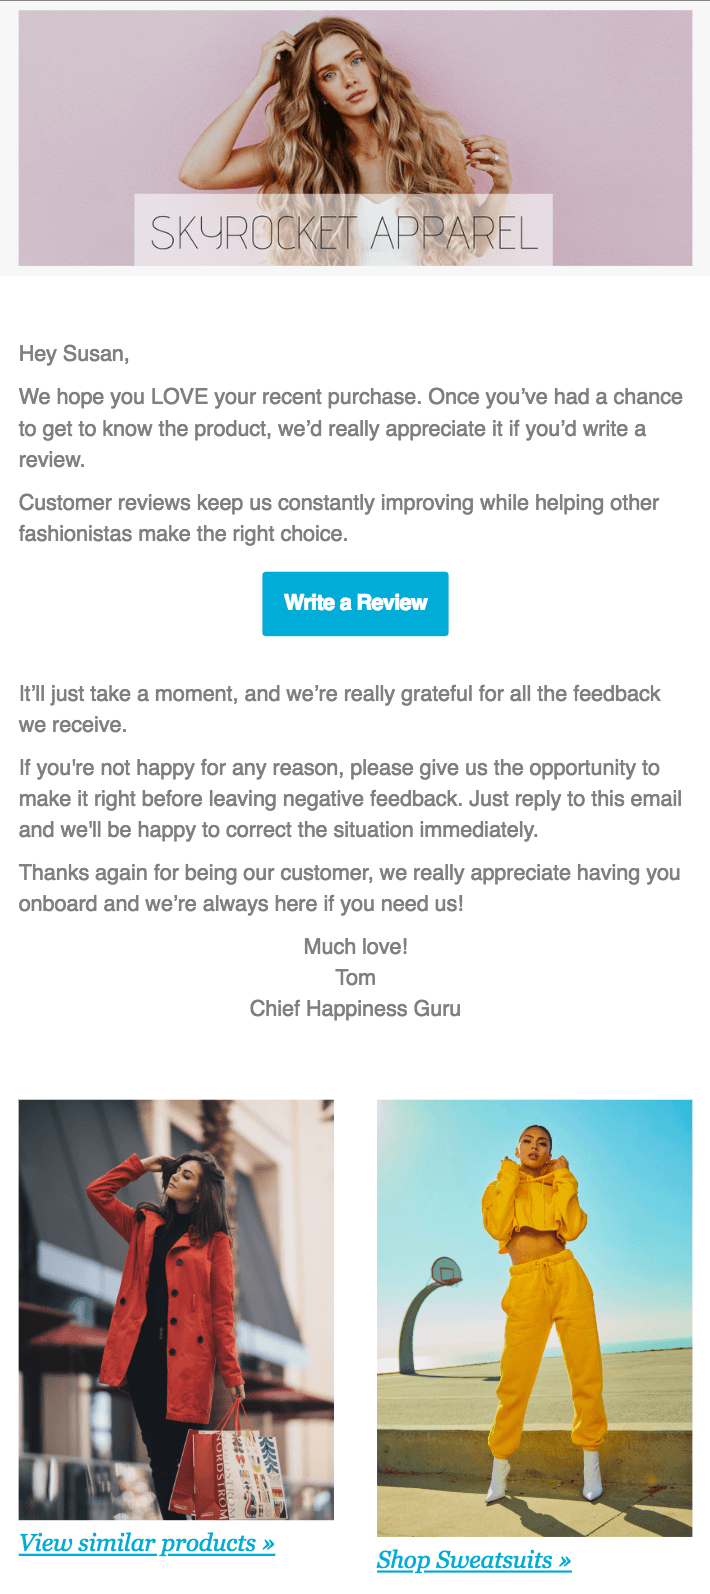 Review Request Email Template